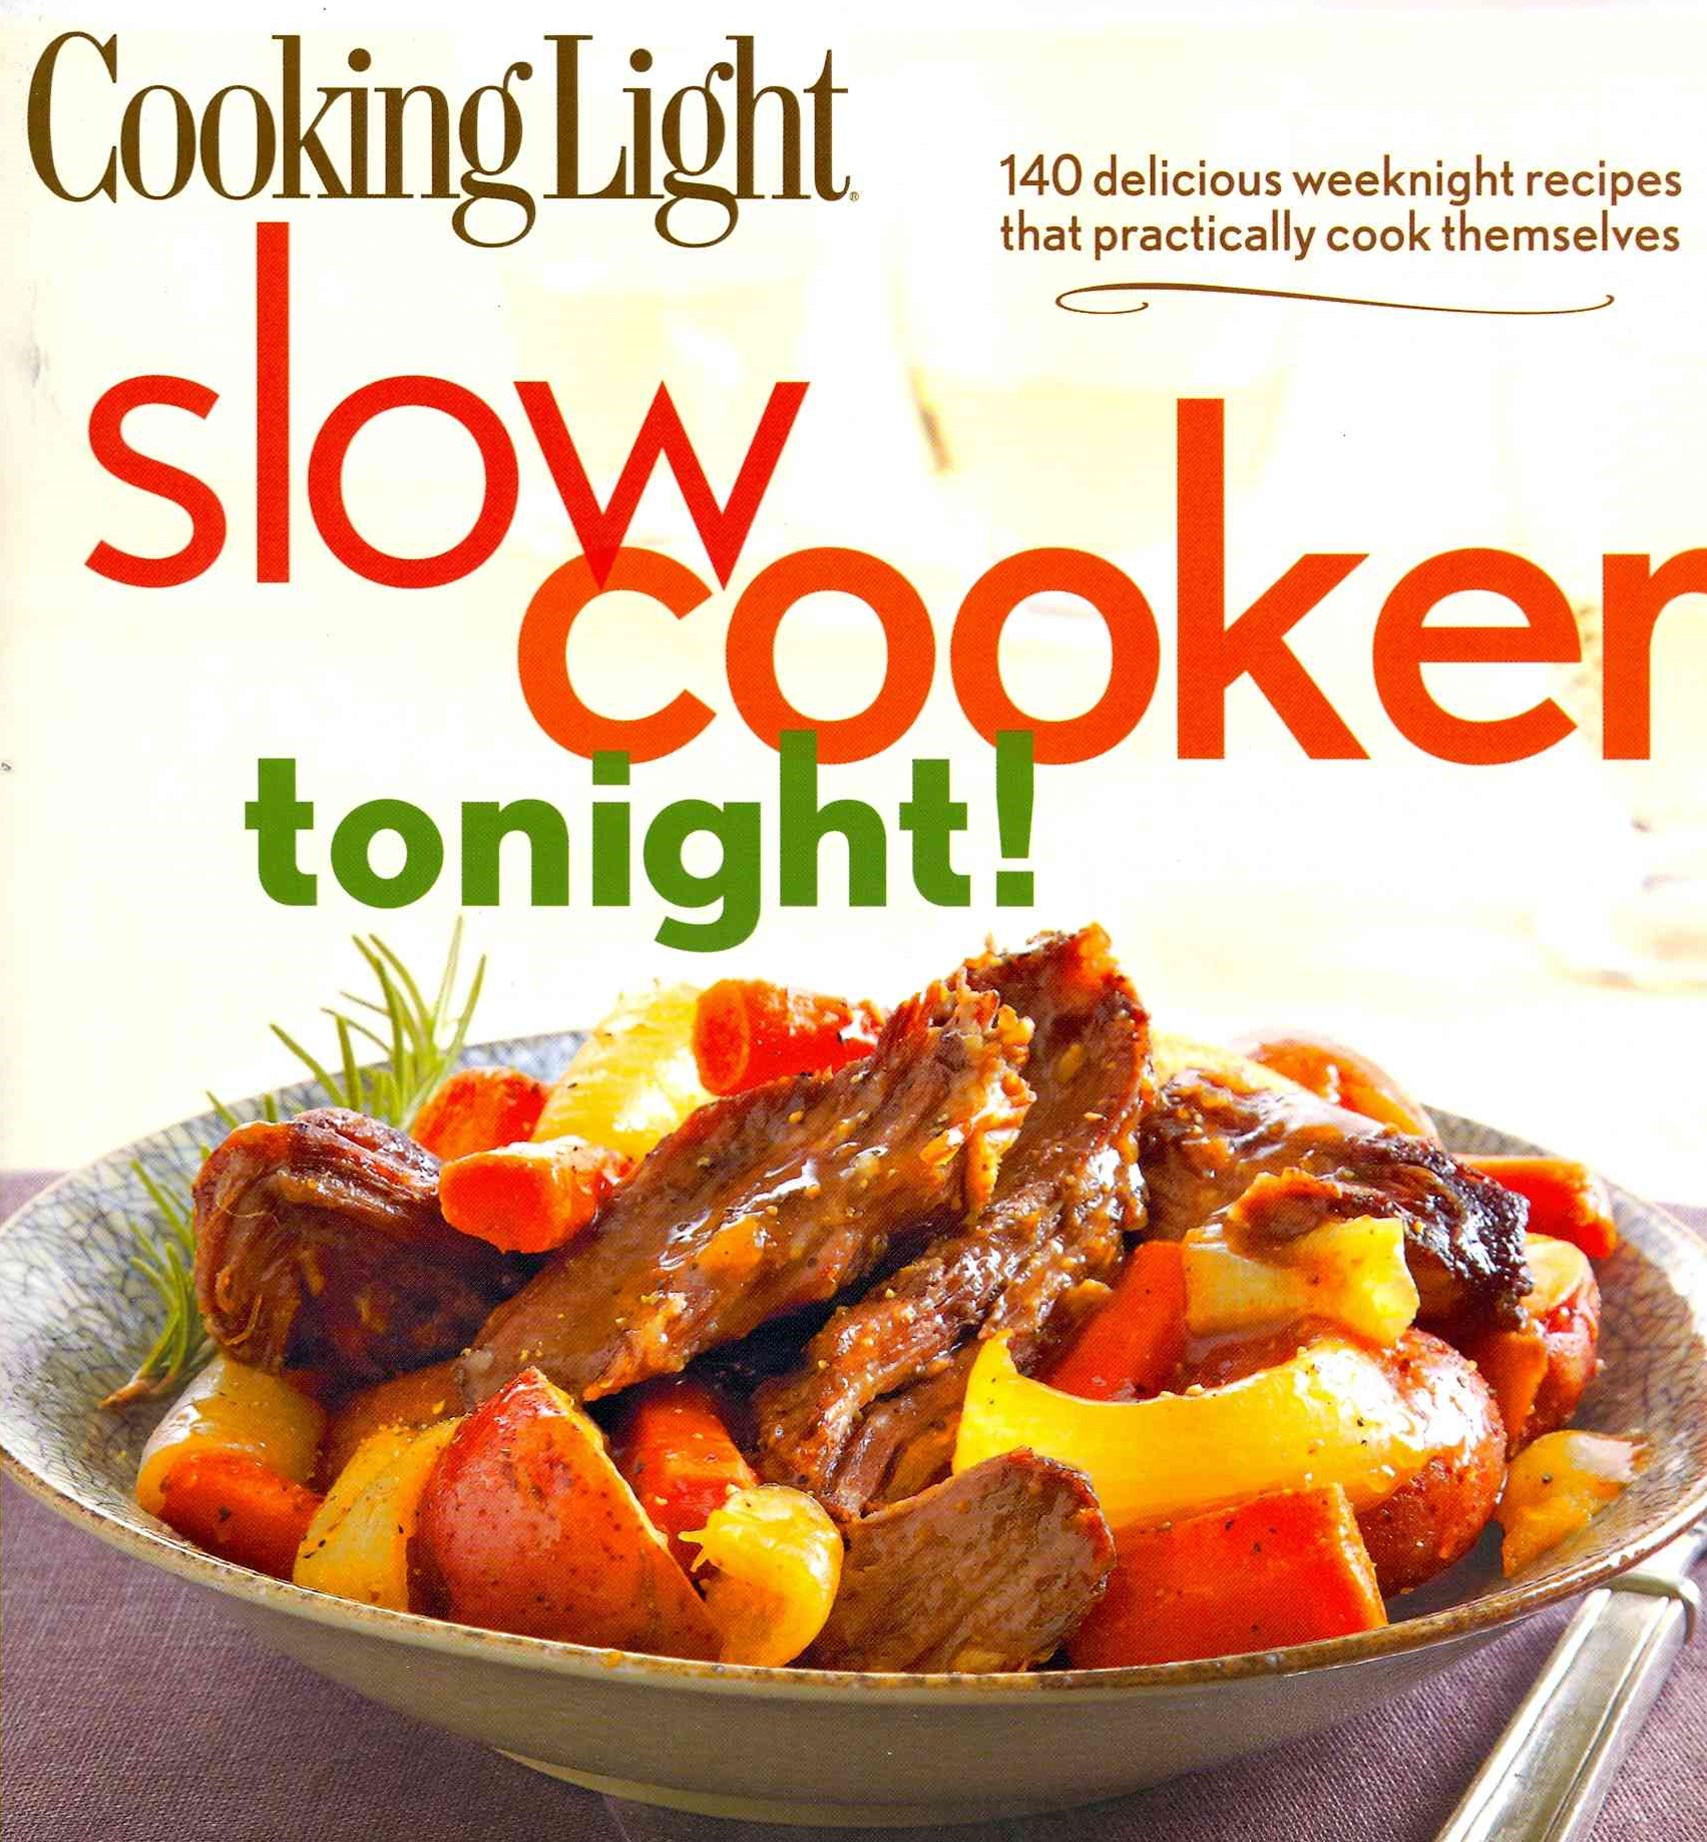 Slow-Cooker Tonight!: 140 delicious weeknight recipes that practically cook themselves